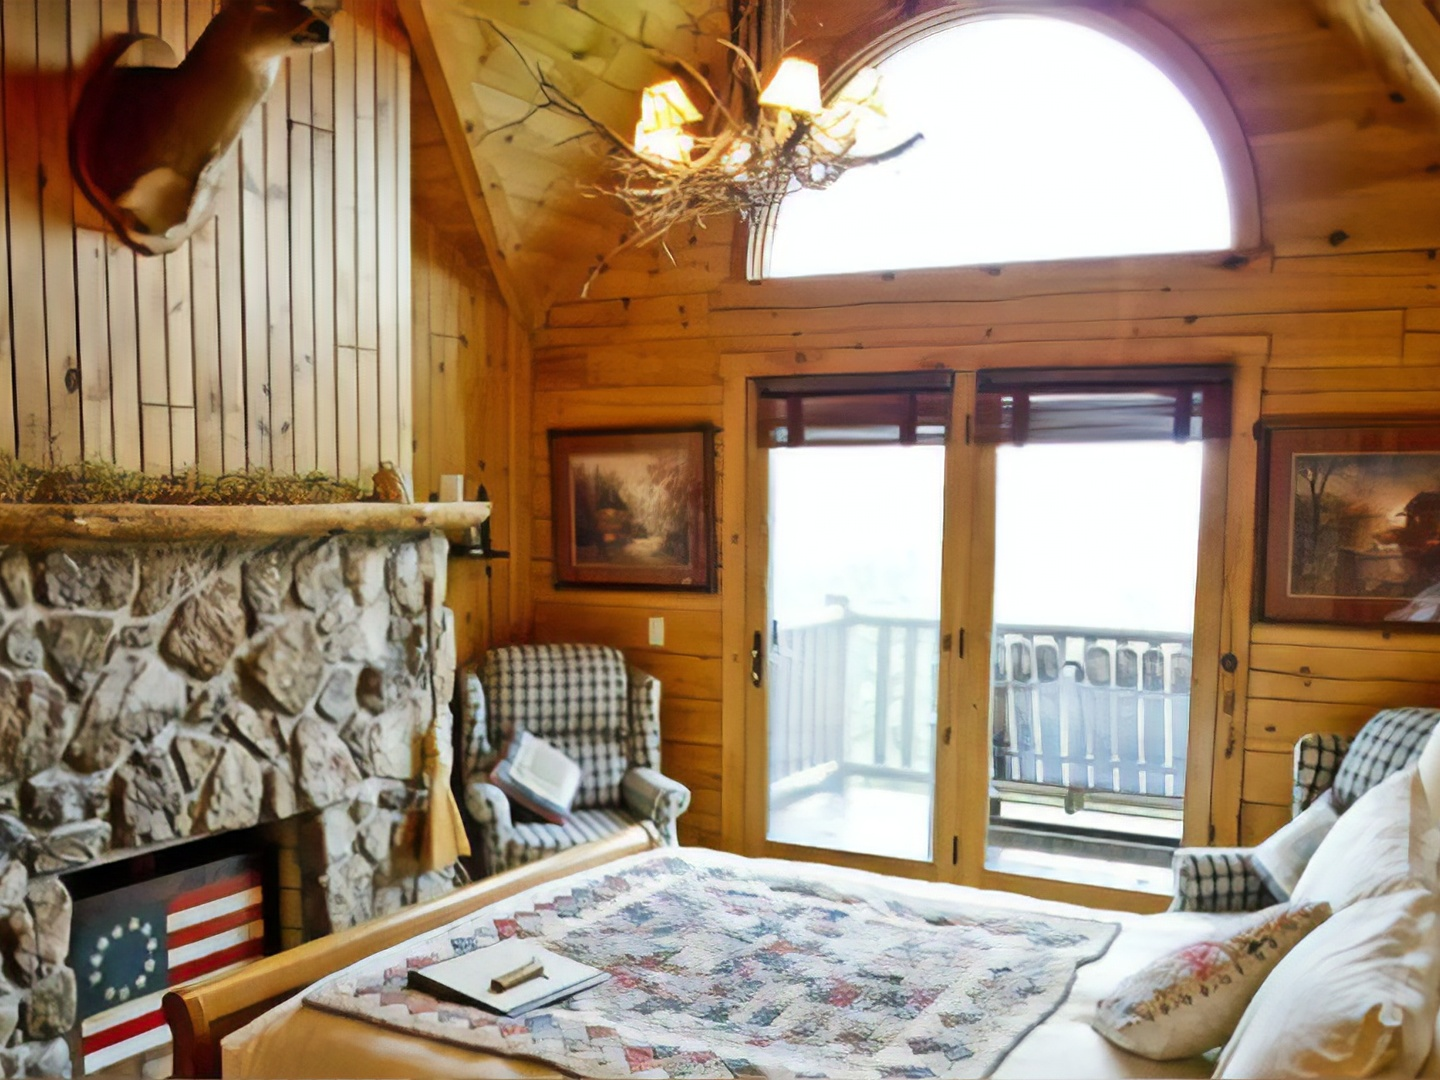 A bedroom with a fireplace and a large window at North Fork Mountain Inn Bed & Breakfast.